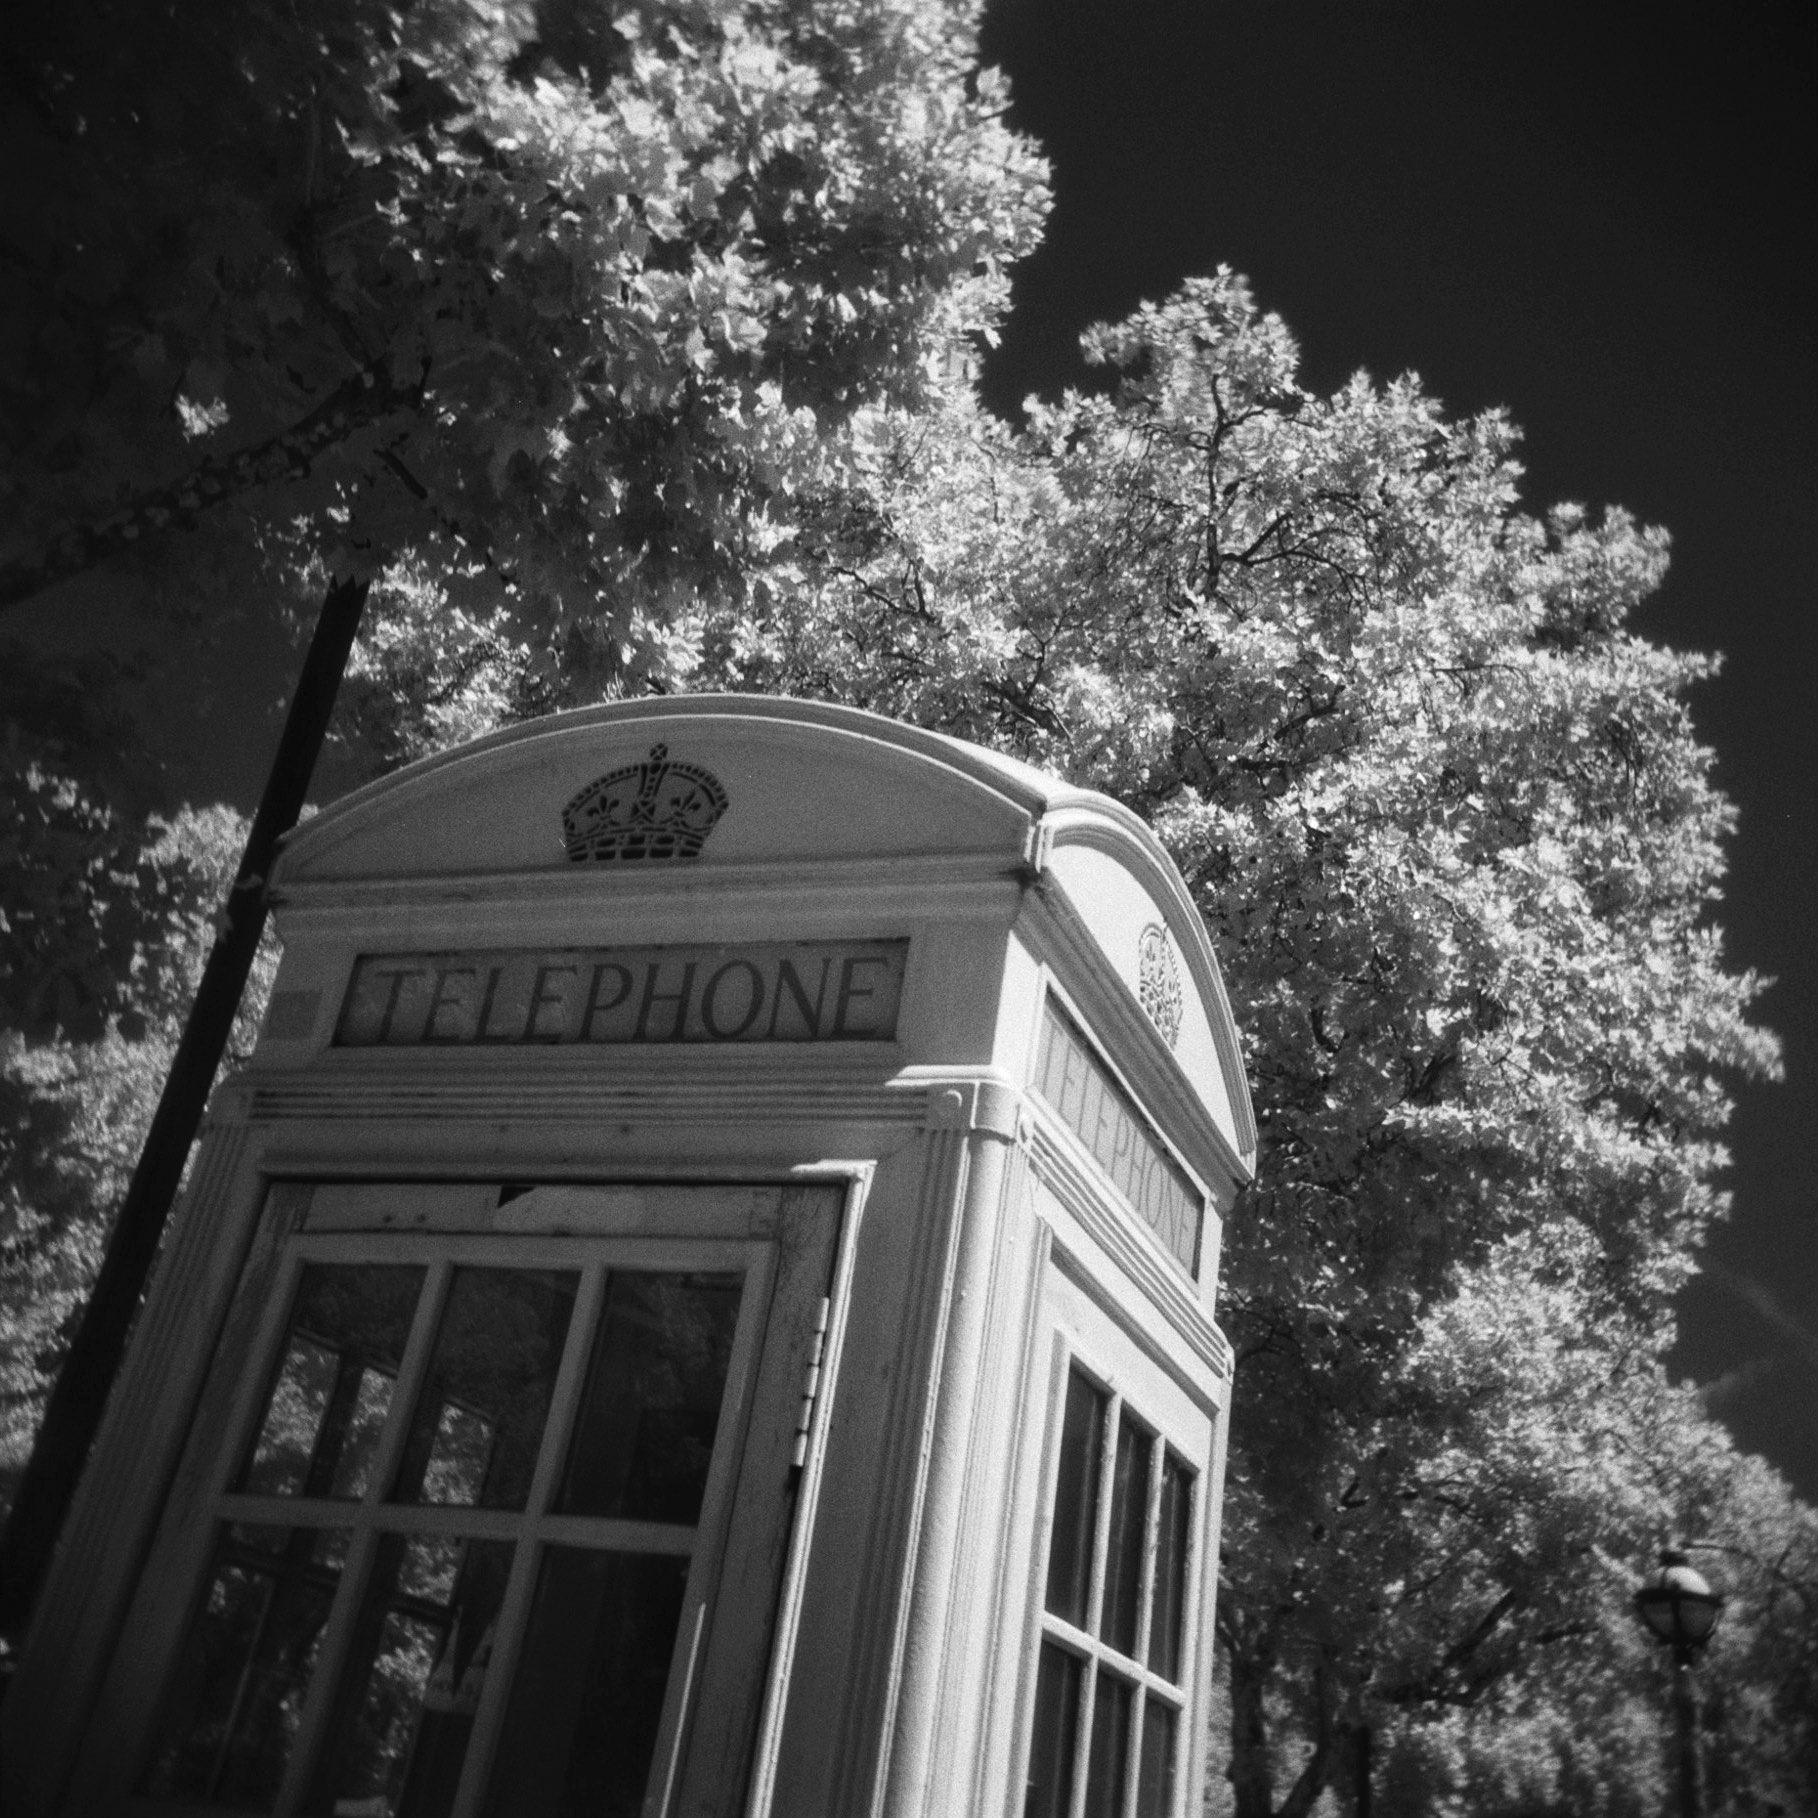 @Givemeabiscuit Today's Archive photo Telephone Box series Holga #ilfordphoto #fridayfavourites #specialistfilm #ilfordsfx #believeinfilm